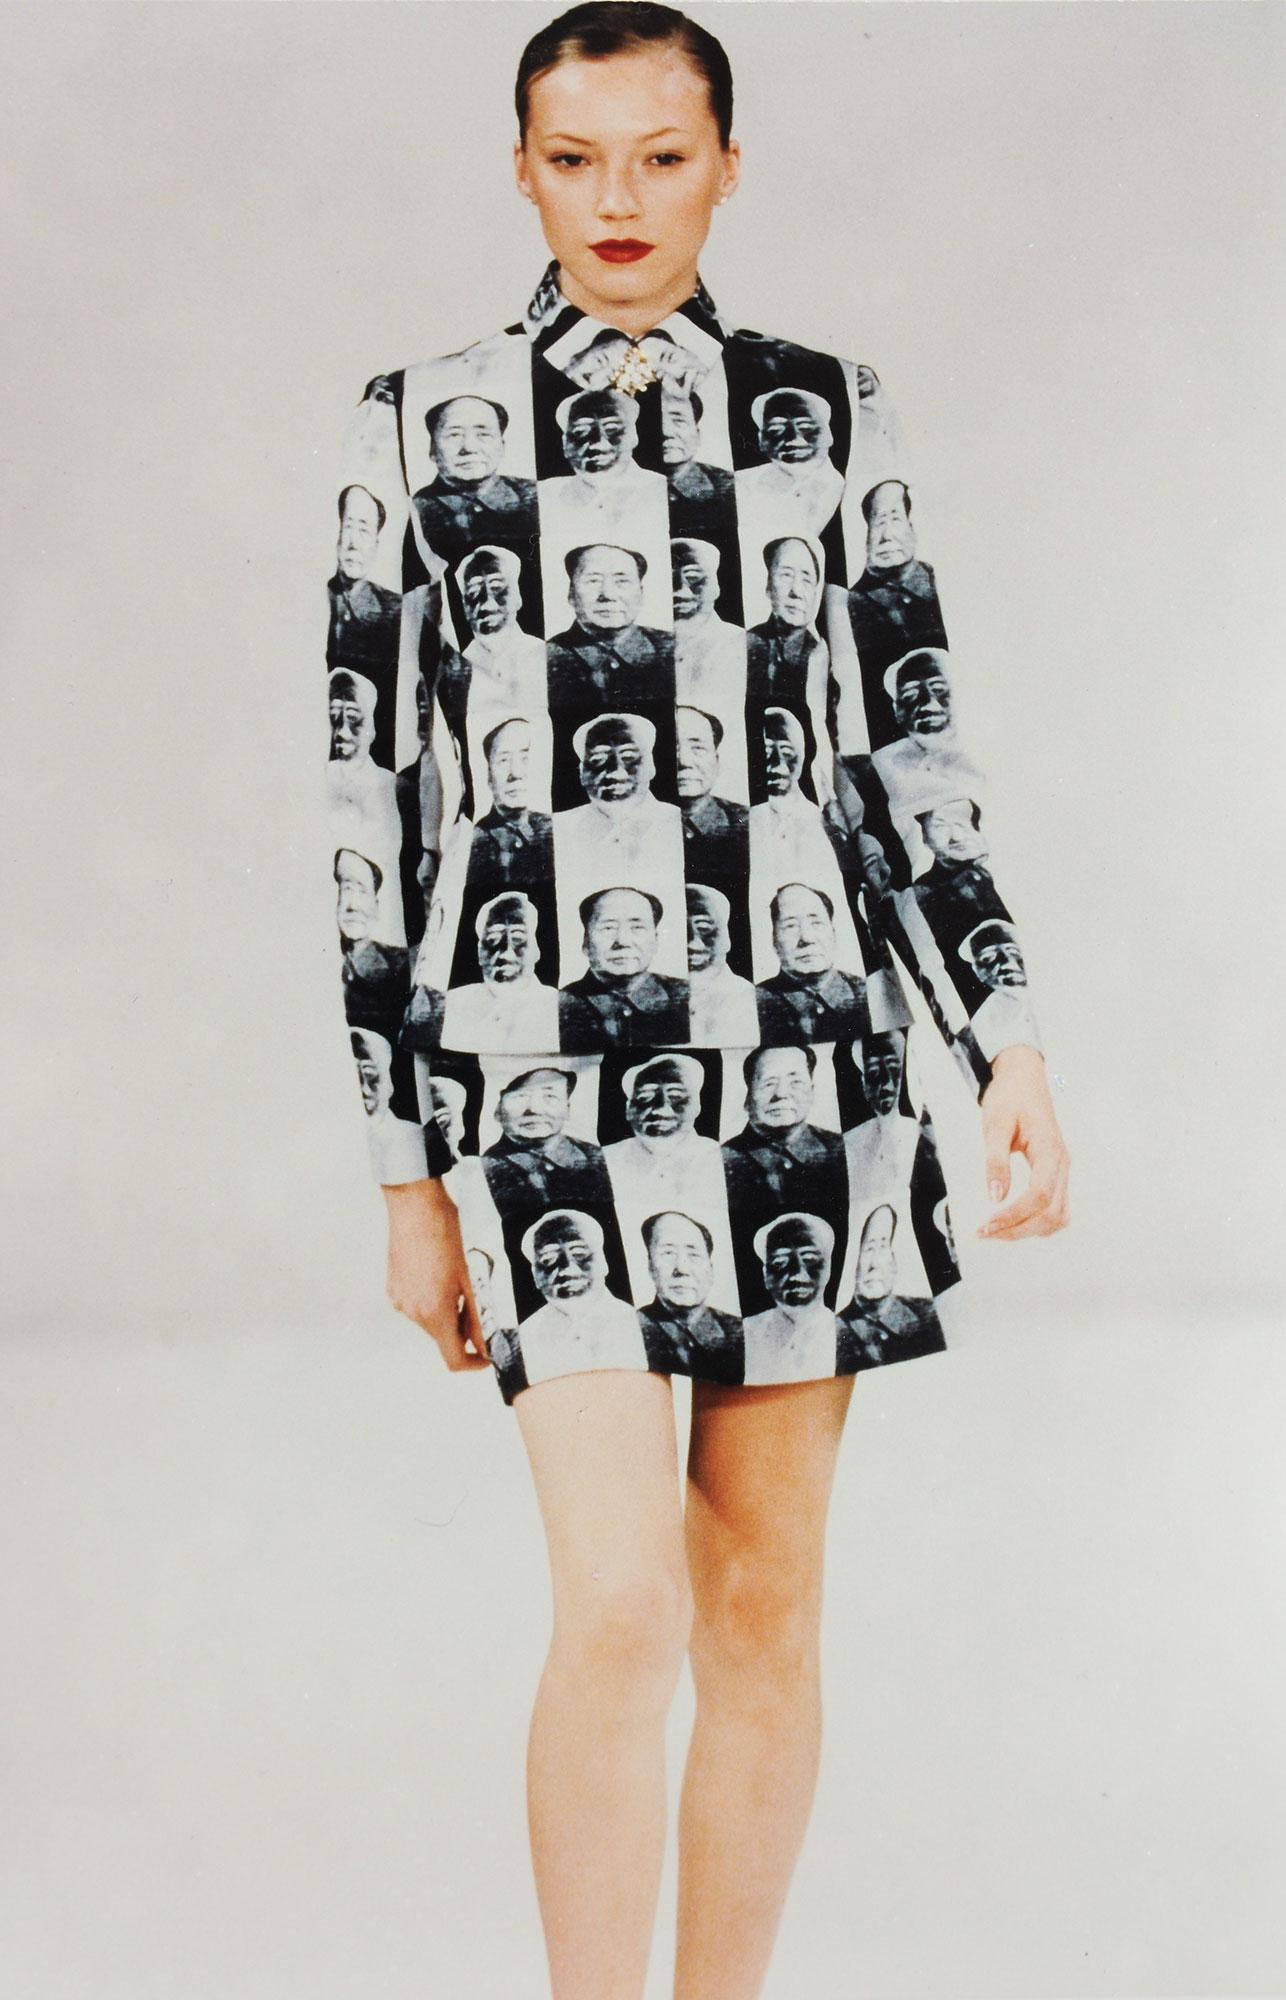 A model wearing a dress with Chairman Mao printed on